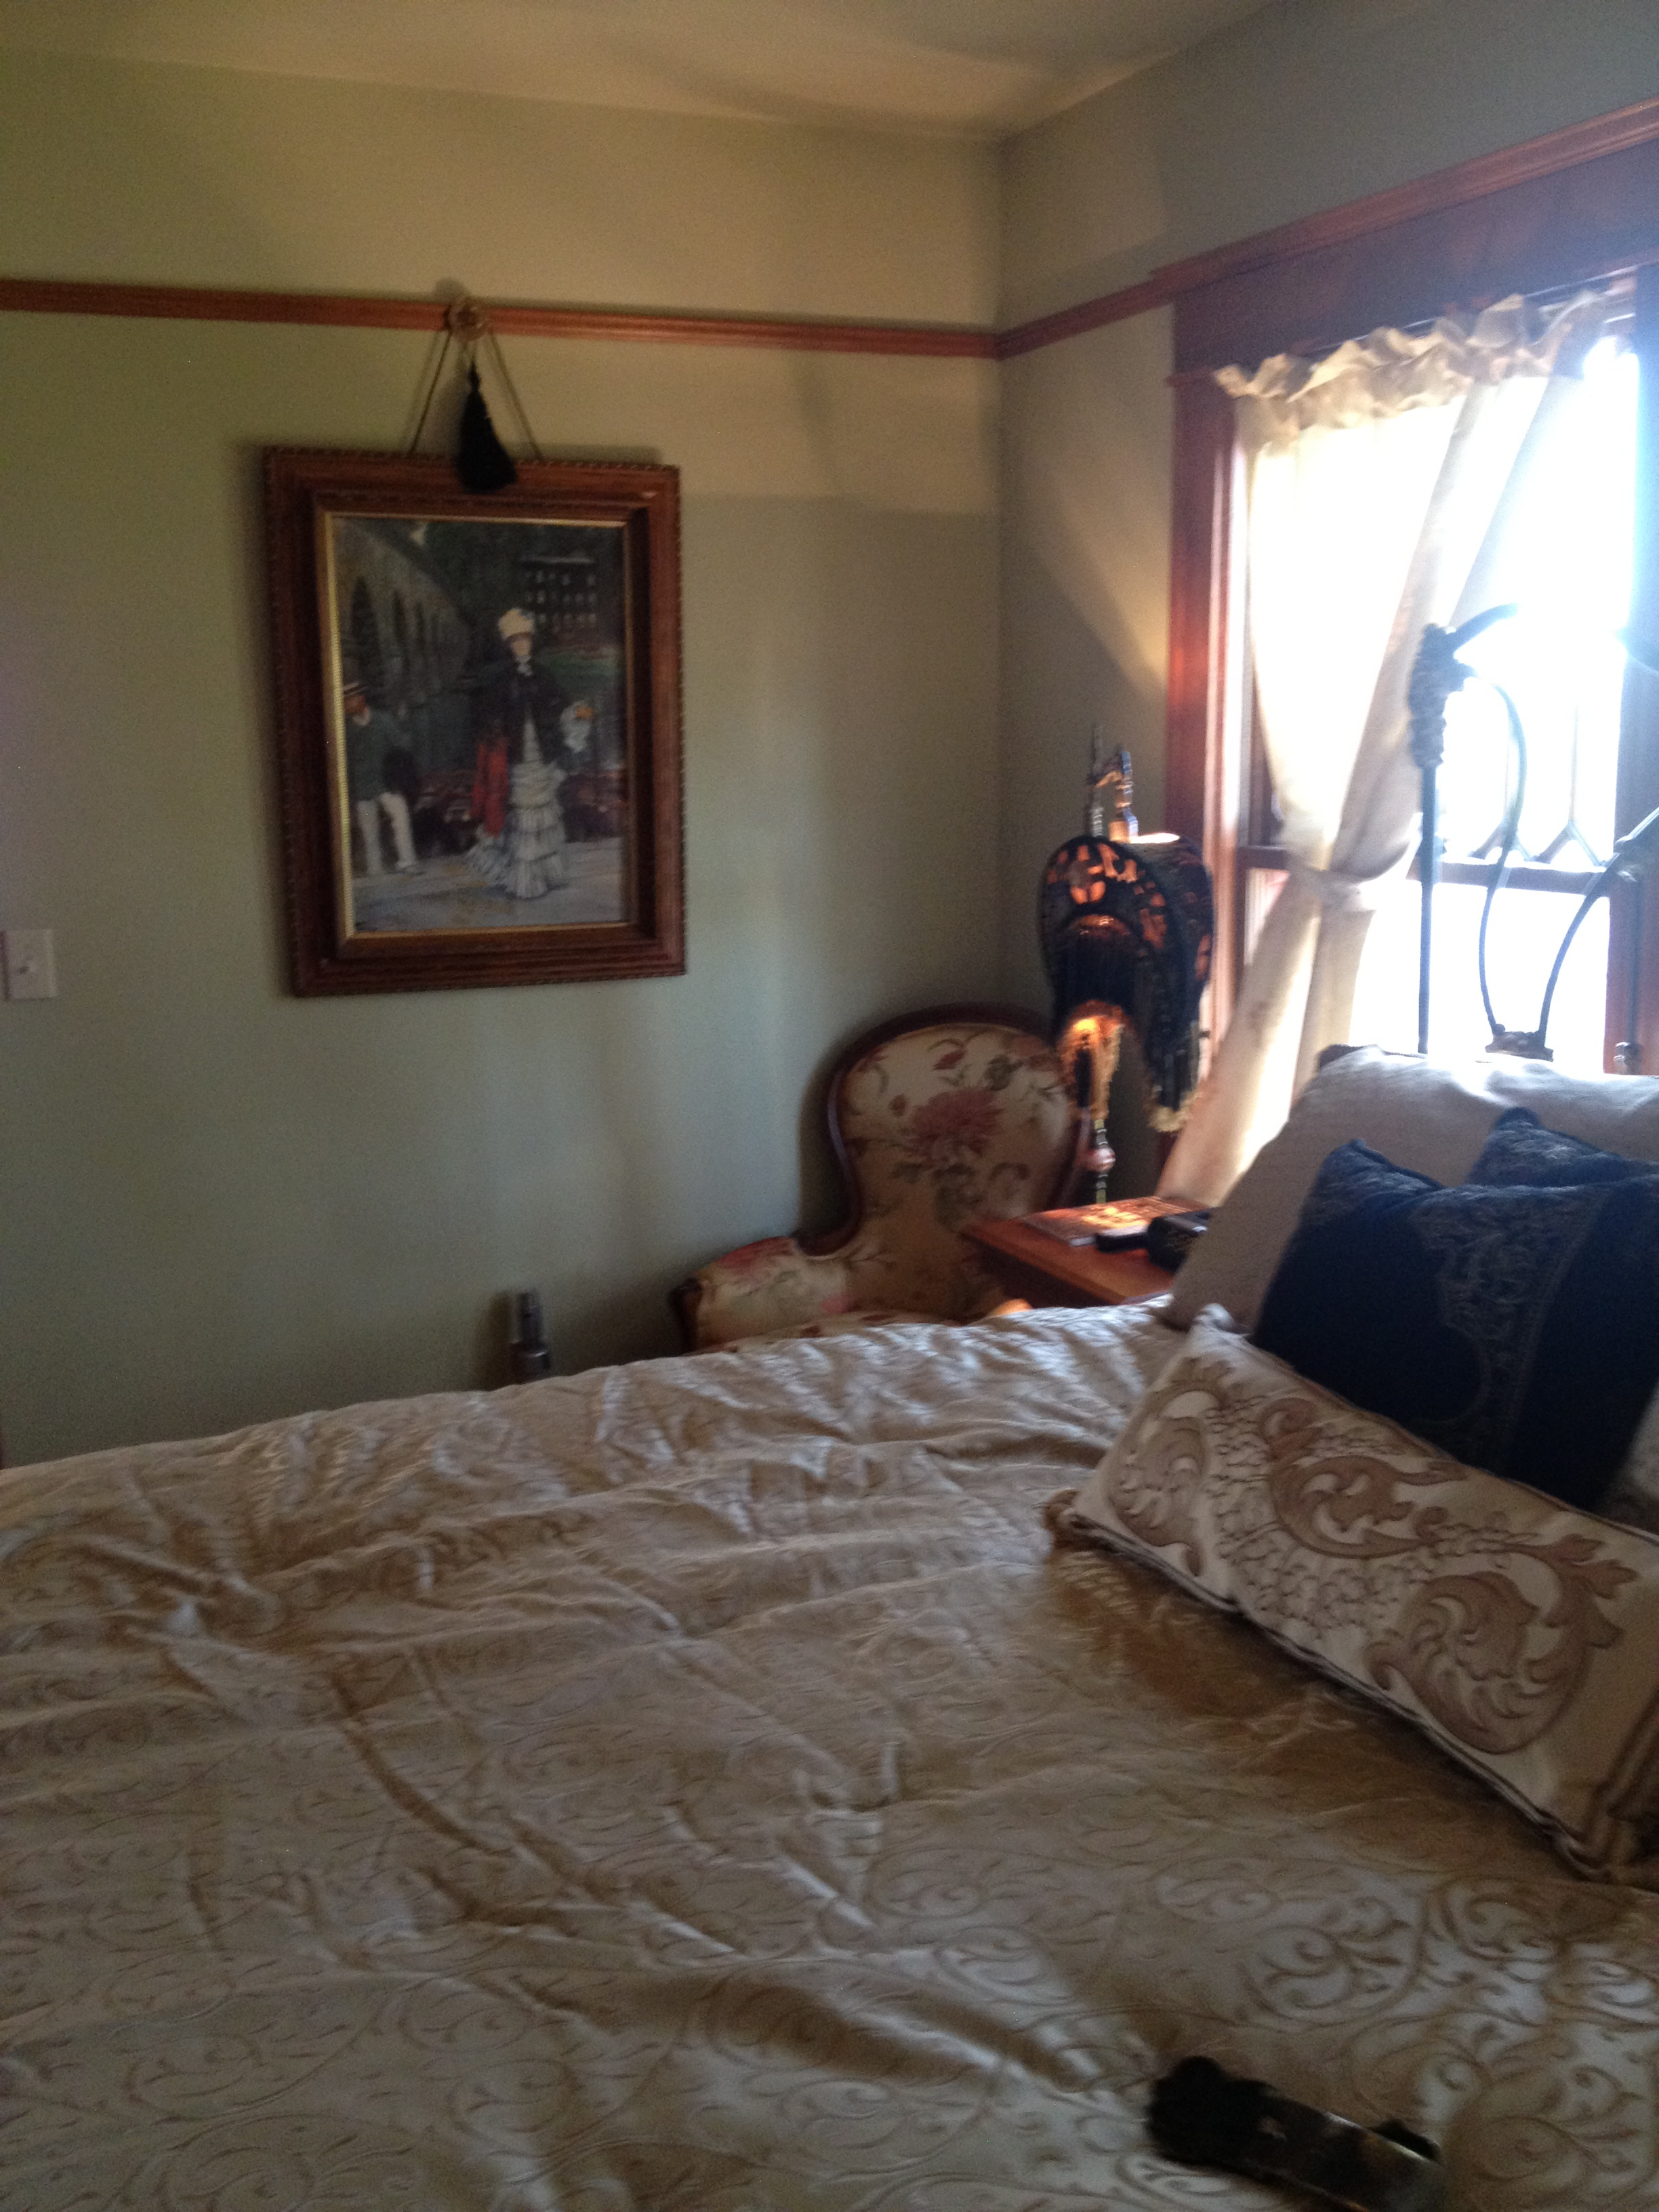 Prescott Victorian Master bedroom view of art and a chair